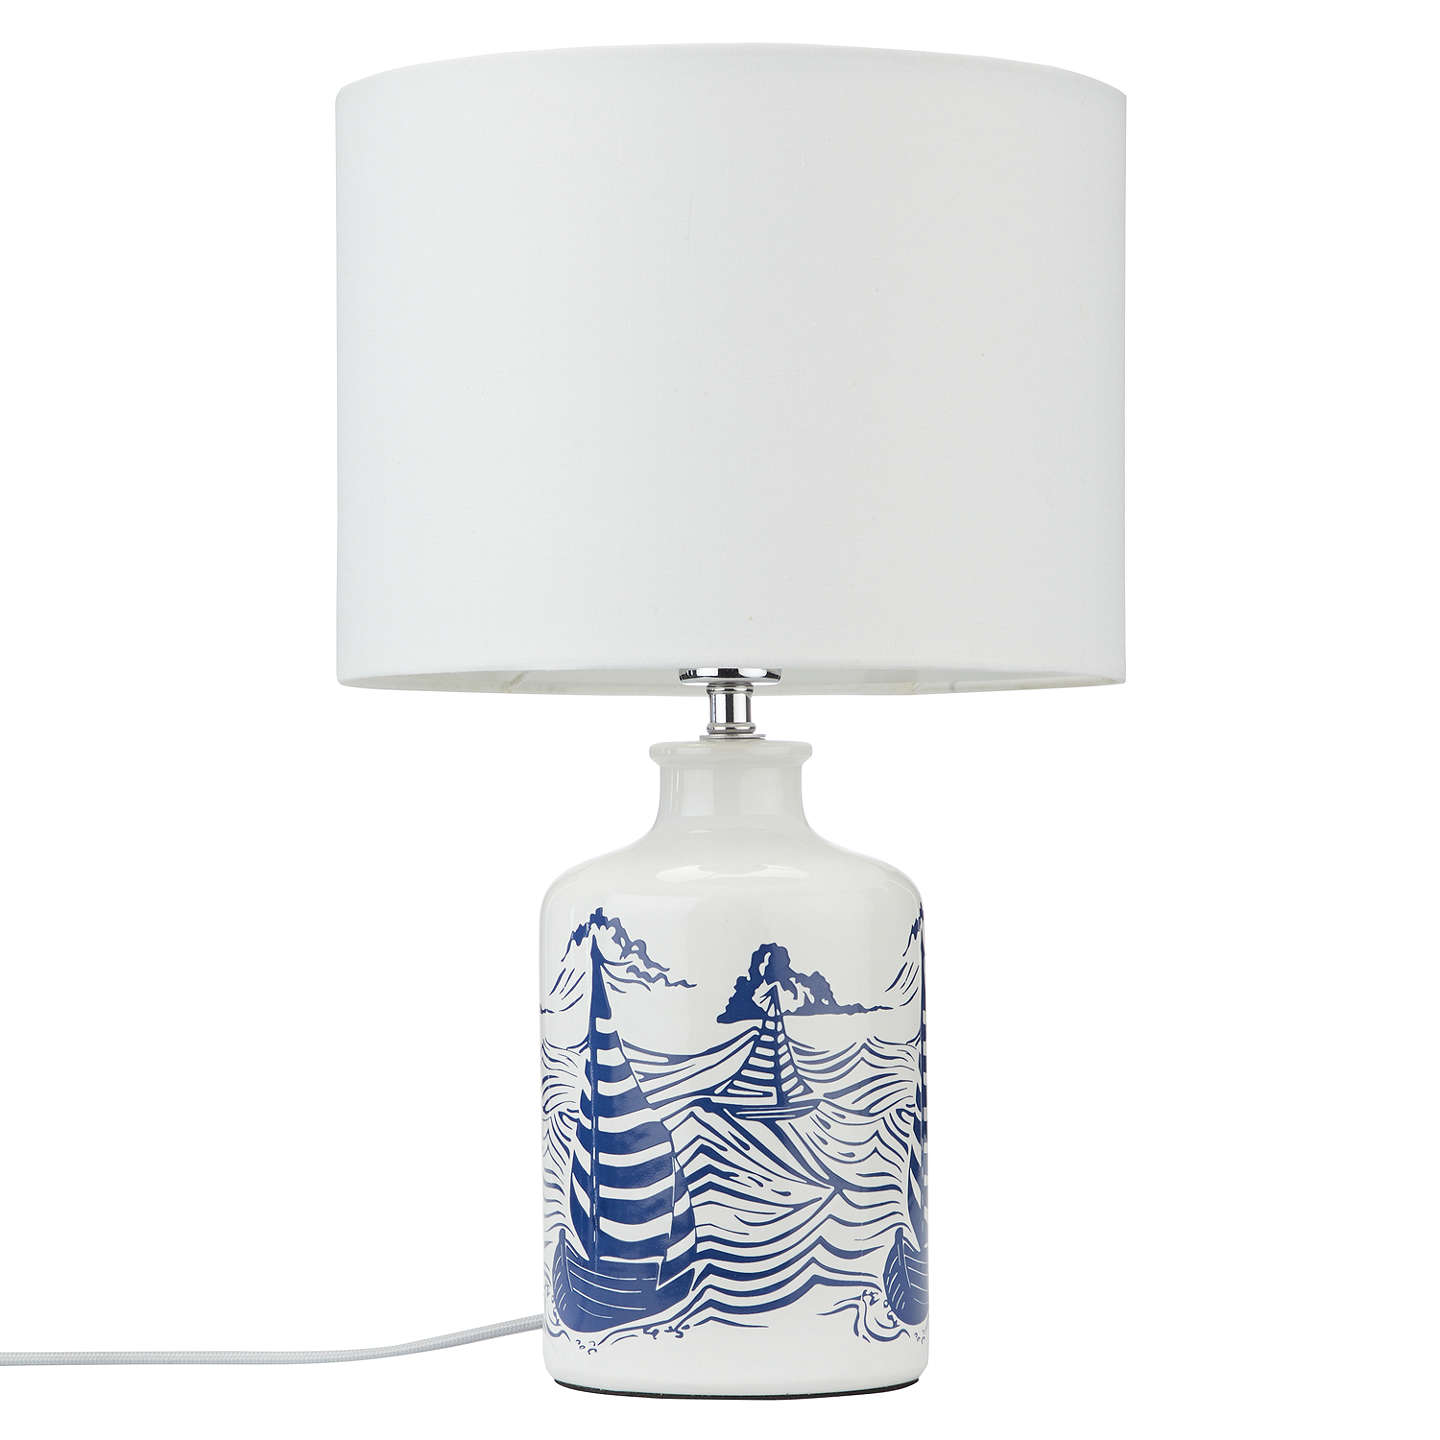 ... BuyJohn Lewis Salcombe Boats Ceramic Table Lamp, White Online At  Johnlewis.com ...